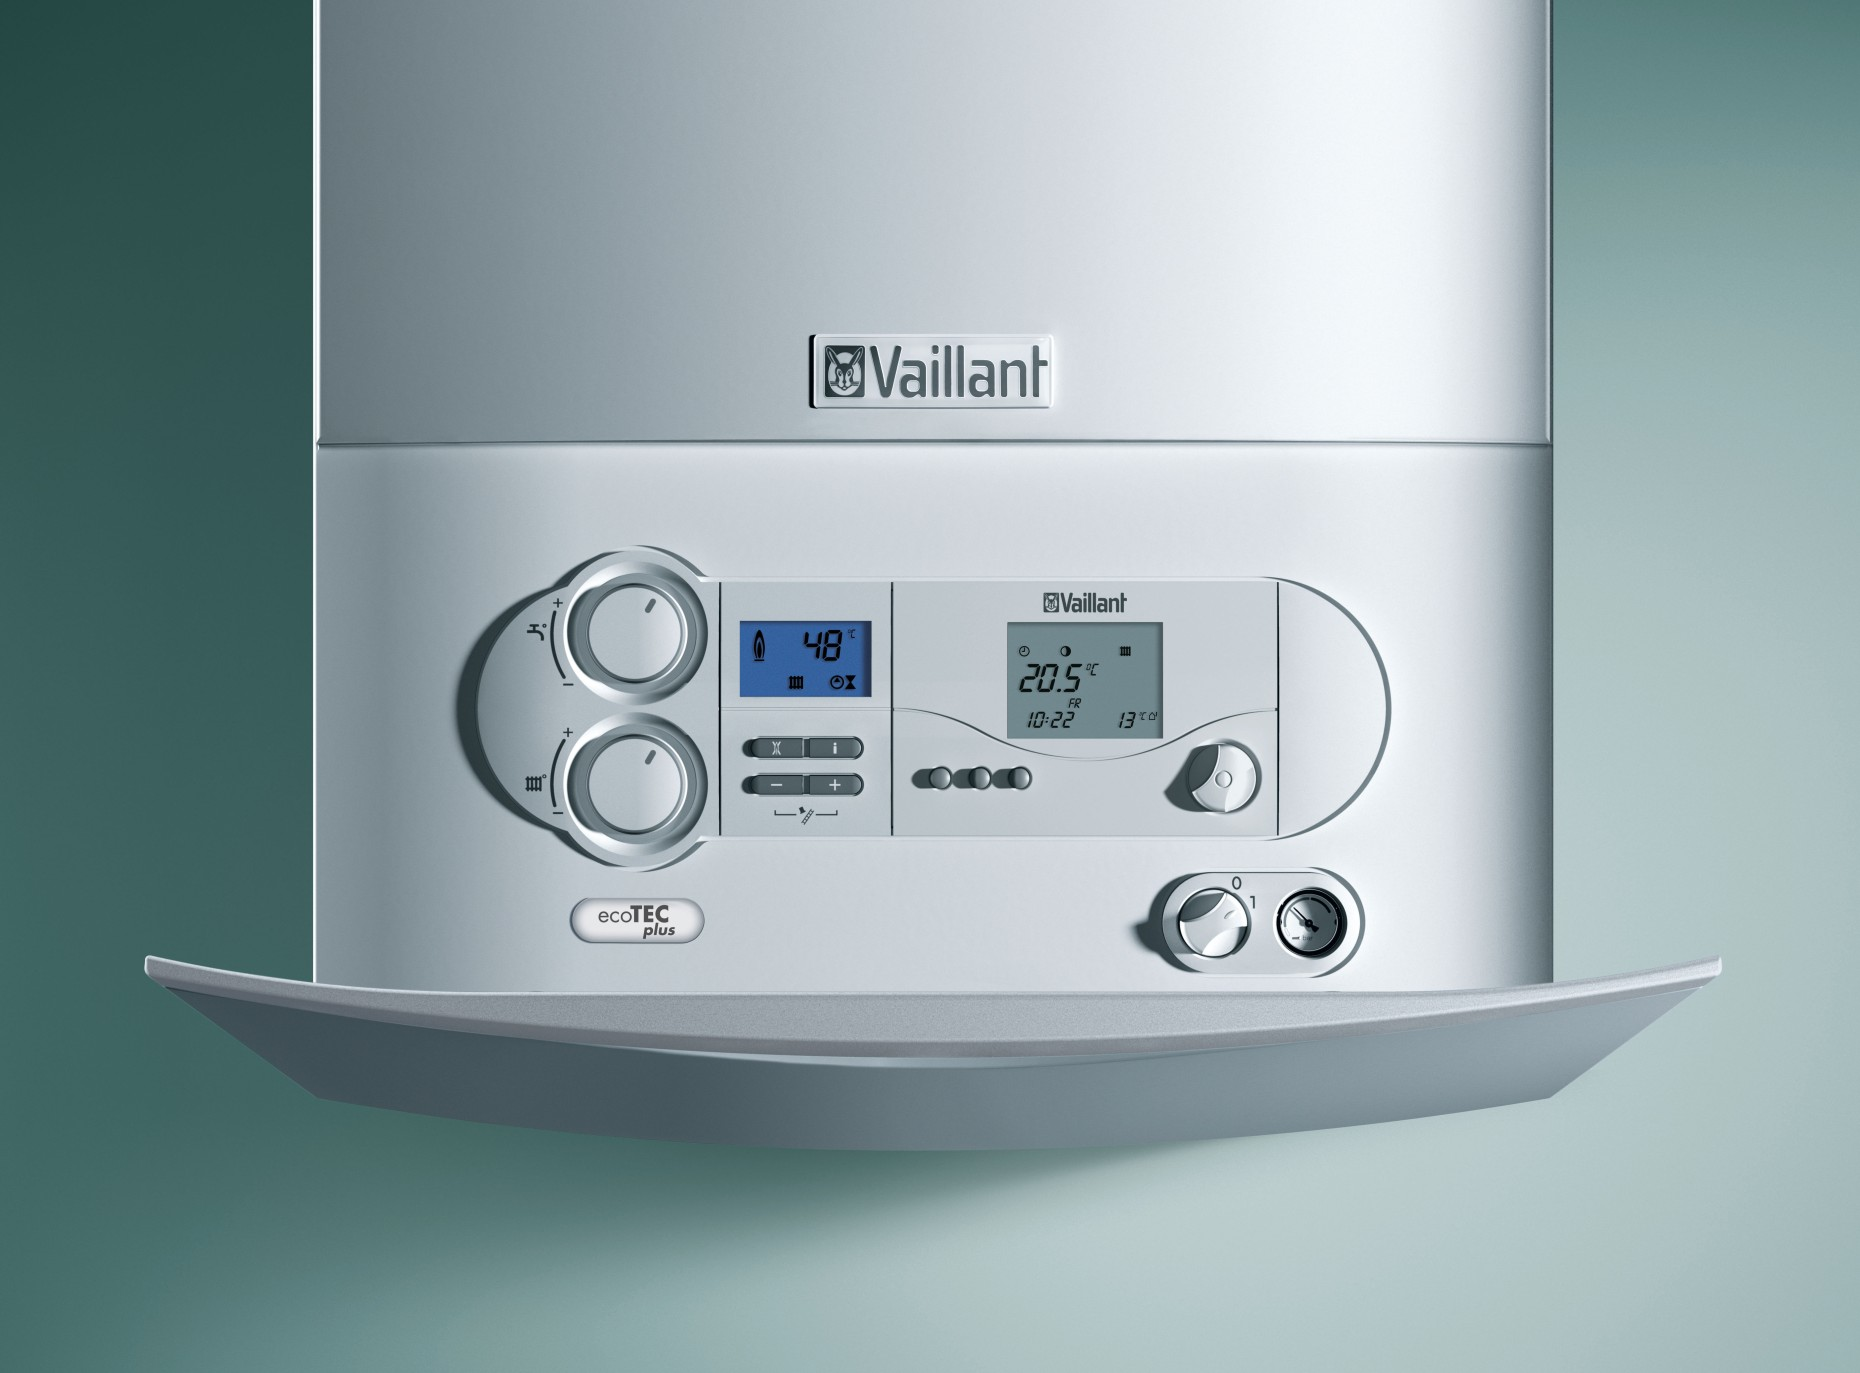 common vaillant ecotec fault code vaillant boiler repair. Black Bedroom Furniture Sets. Home Design Ideas